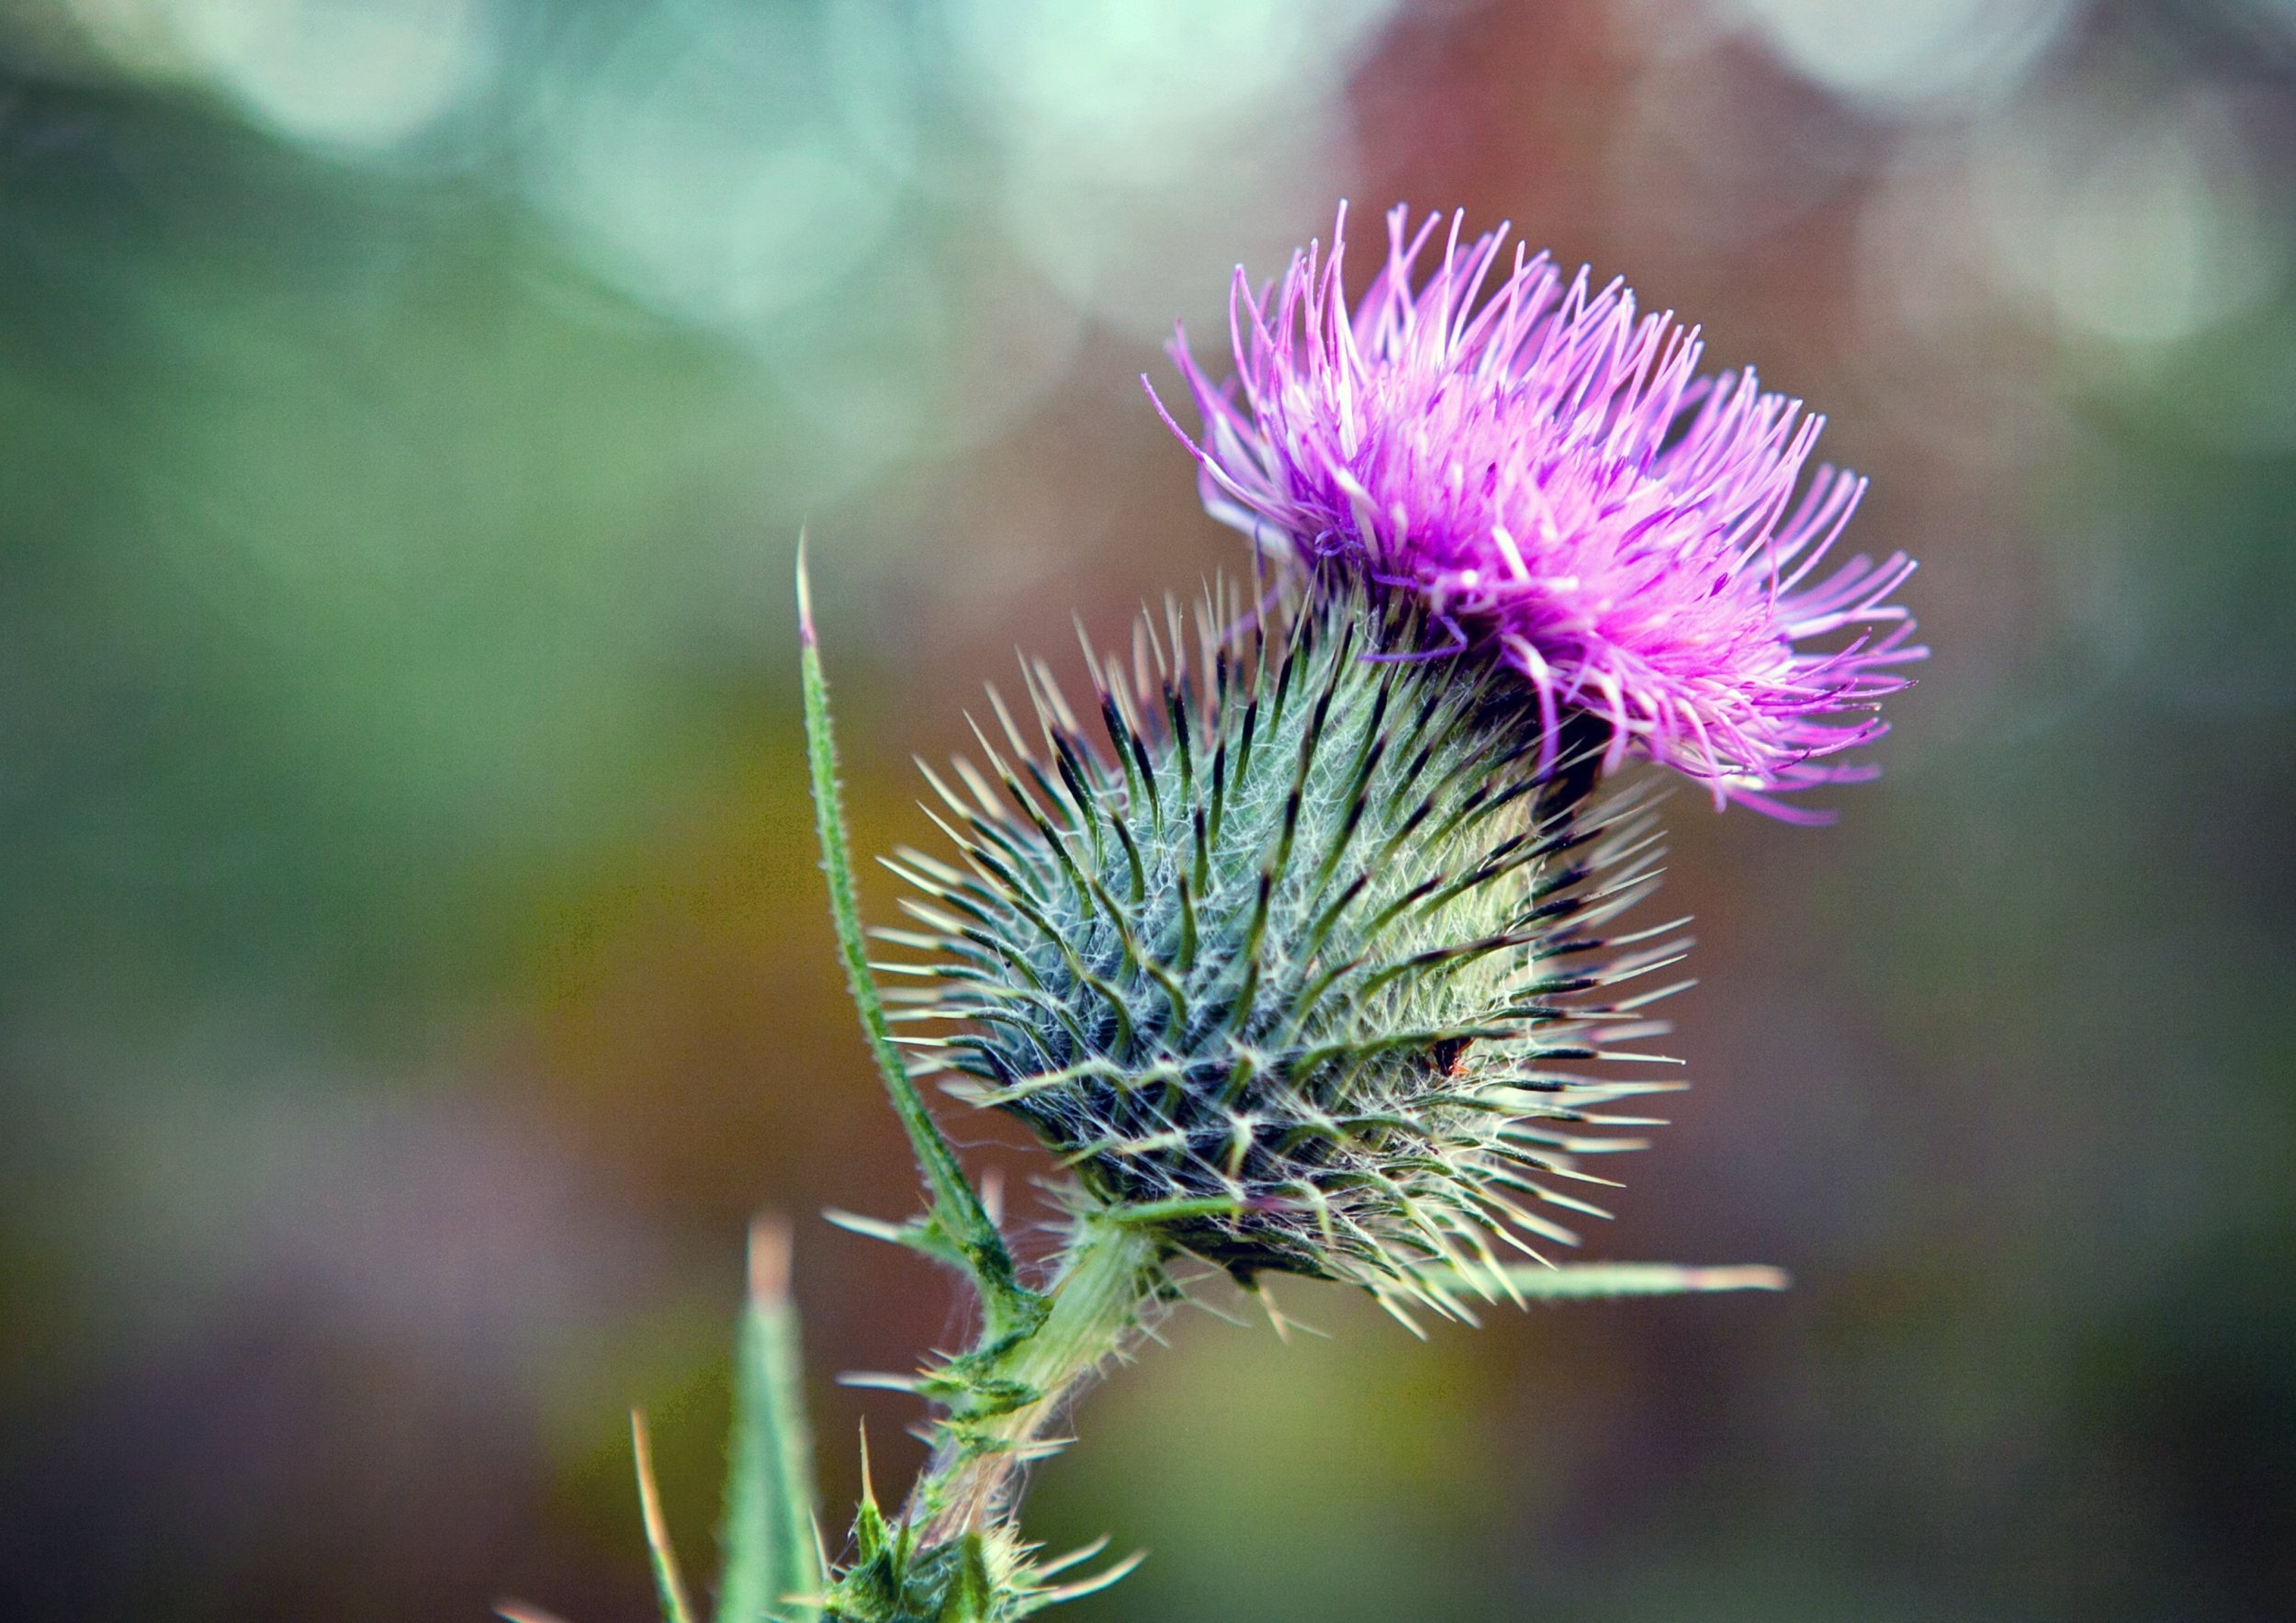 Milk thistle found in Fresh, Creamy Milk body butter with shea butter